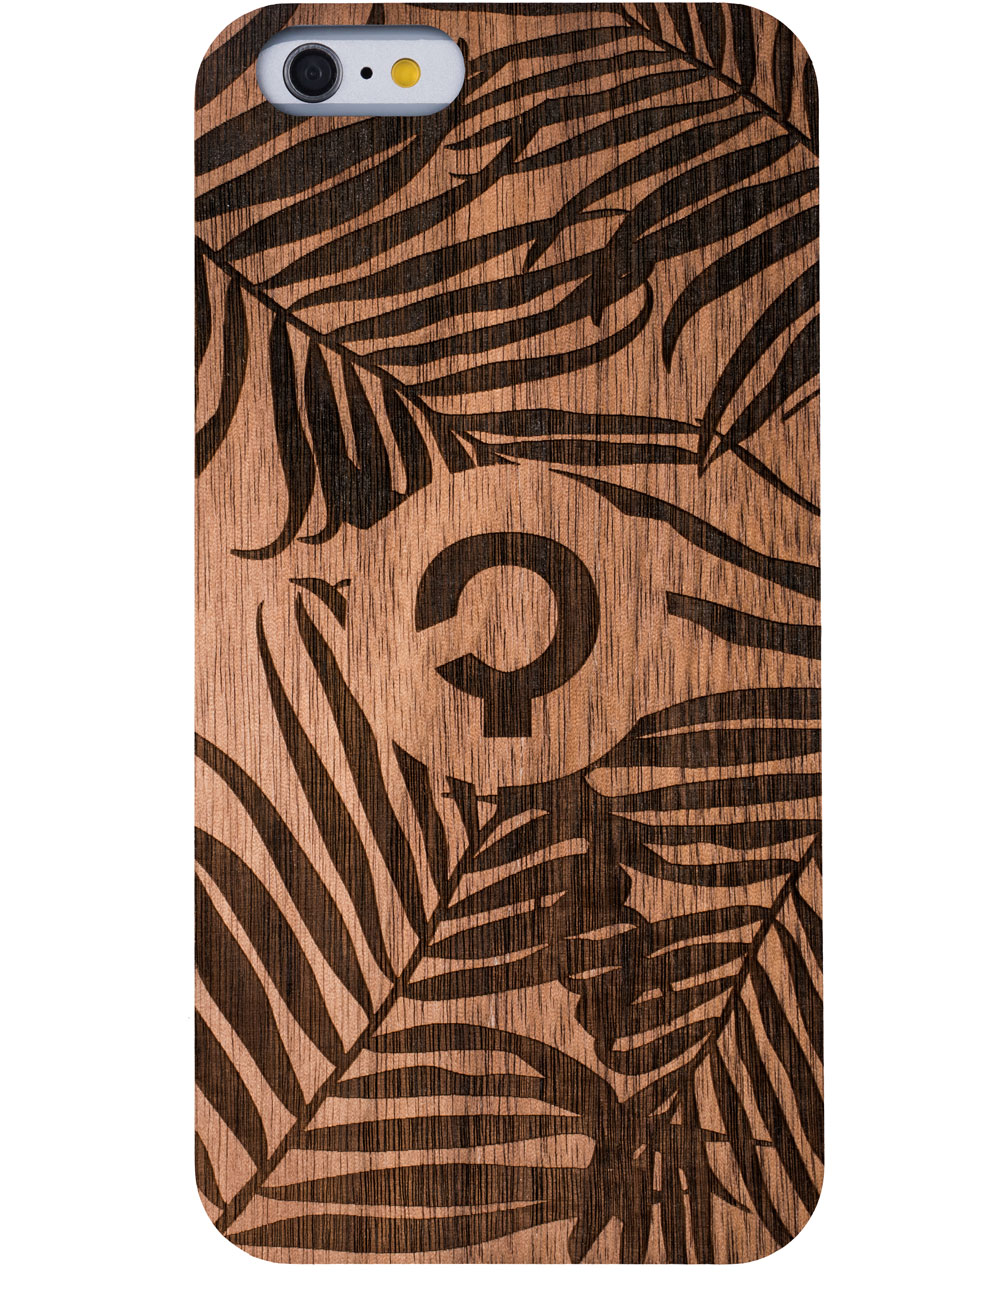 Wooden-case-iPhone-6-plus-Orzech-Jungle